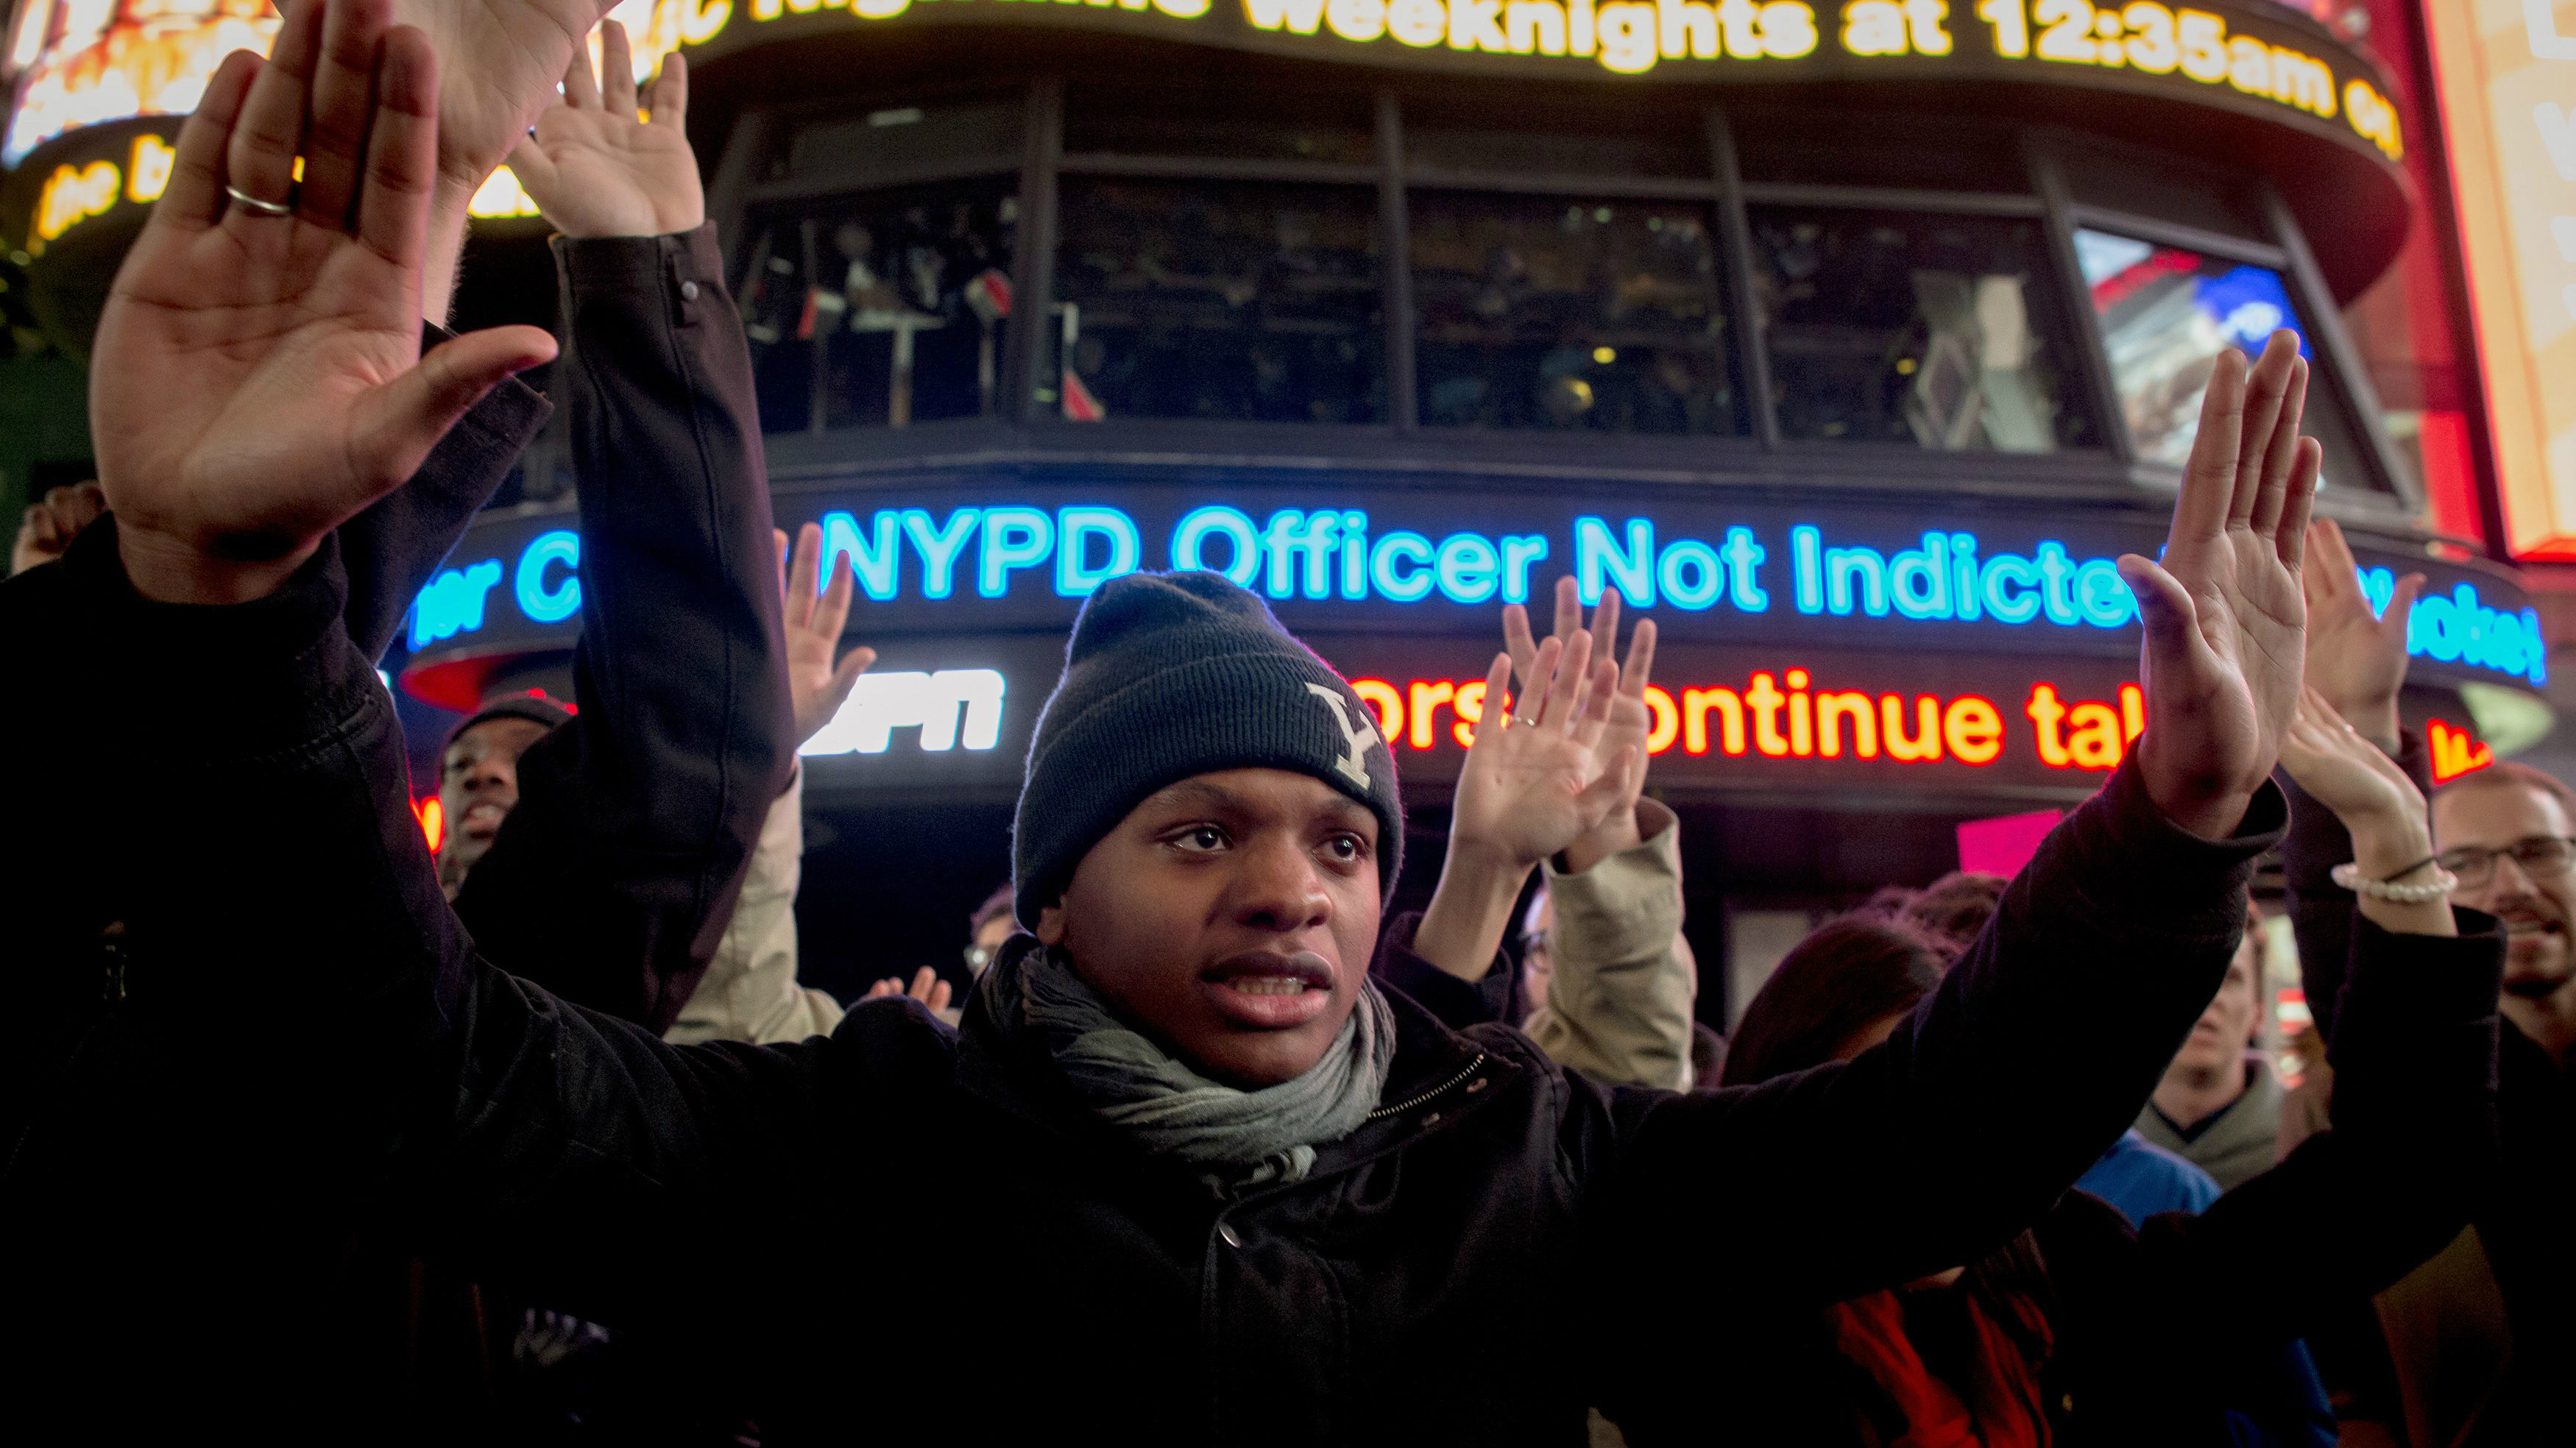 Demonstrators hold their hands up during a protest against the grand jury decision in the Eric Garner case, in Times Square in New York December 3, 2014.